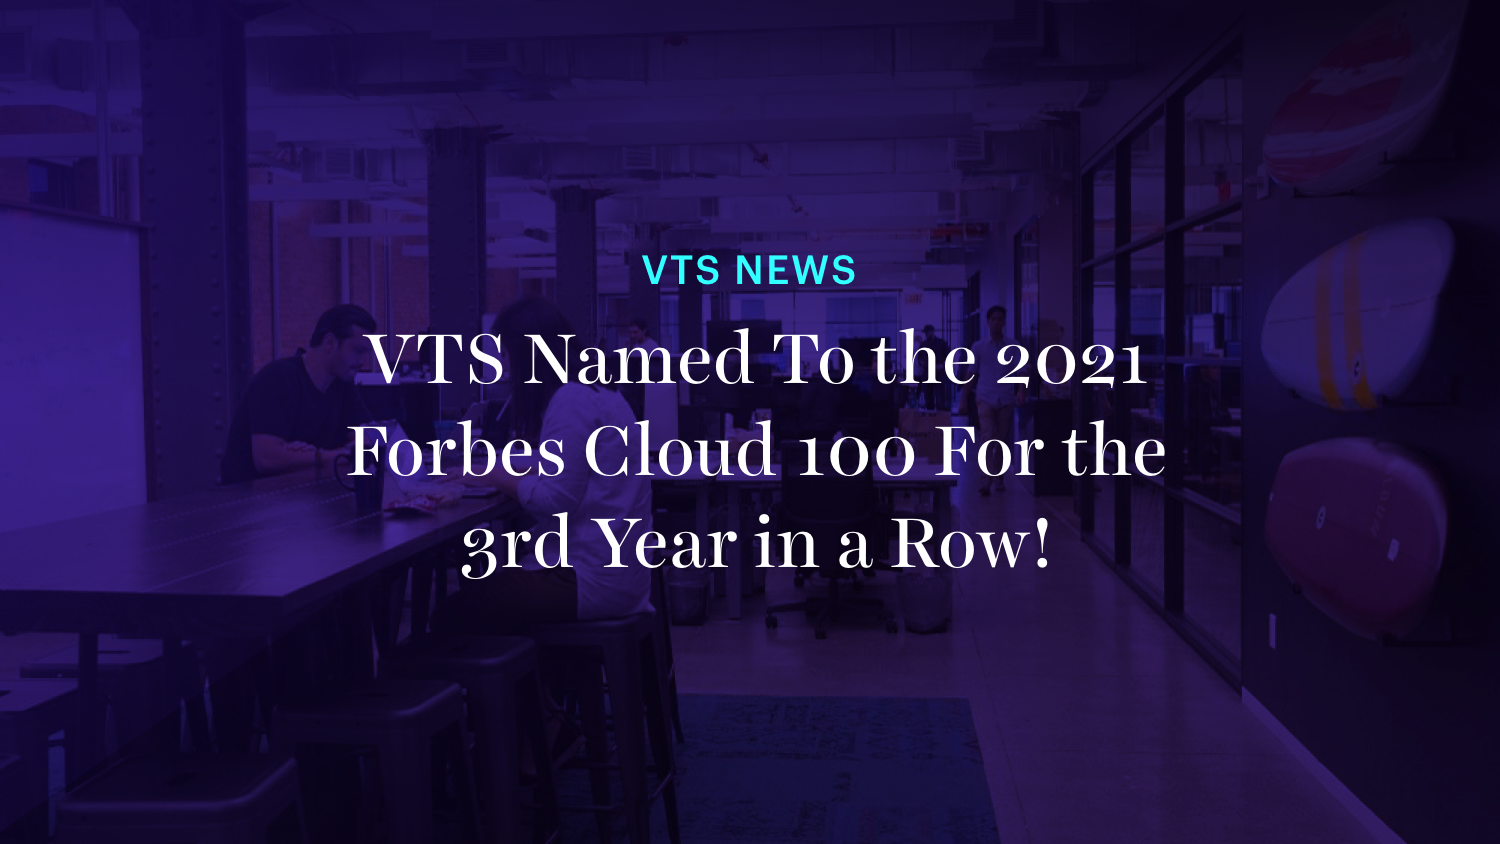 VTS Named To the 2021 Forbes Cloud 100 For the 3rd Year in a Row!